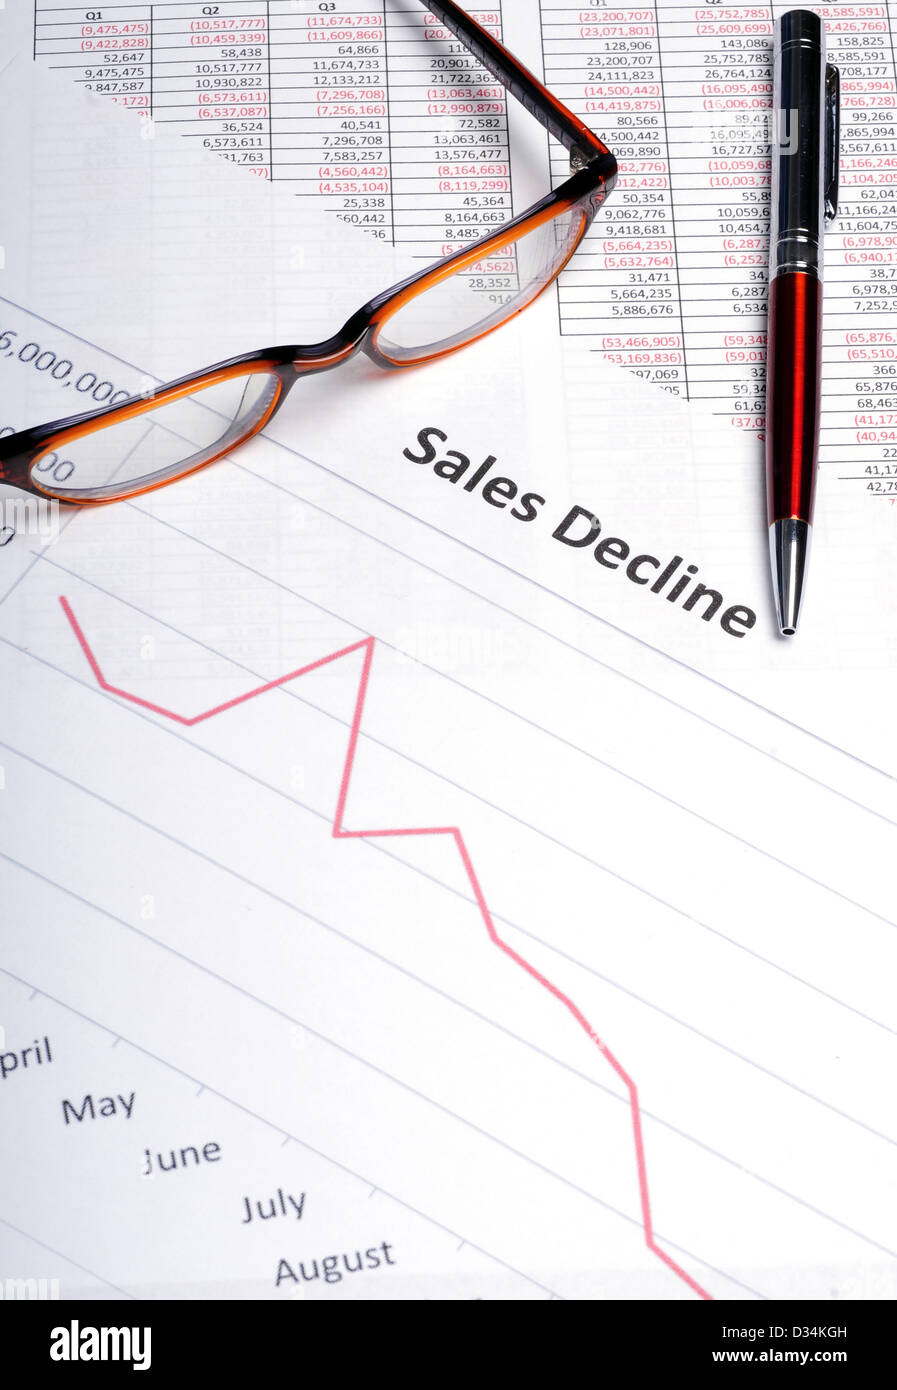 Business analysis showing line graph with sales decline results - Stock Image